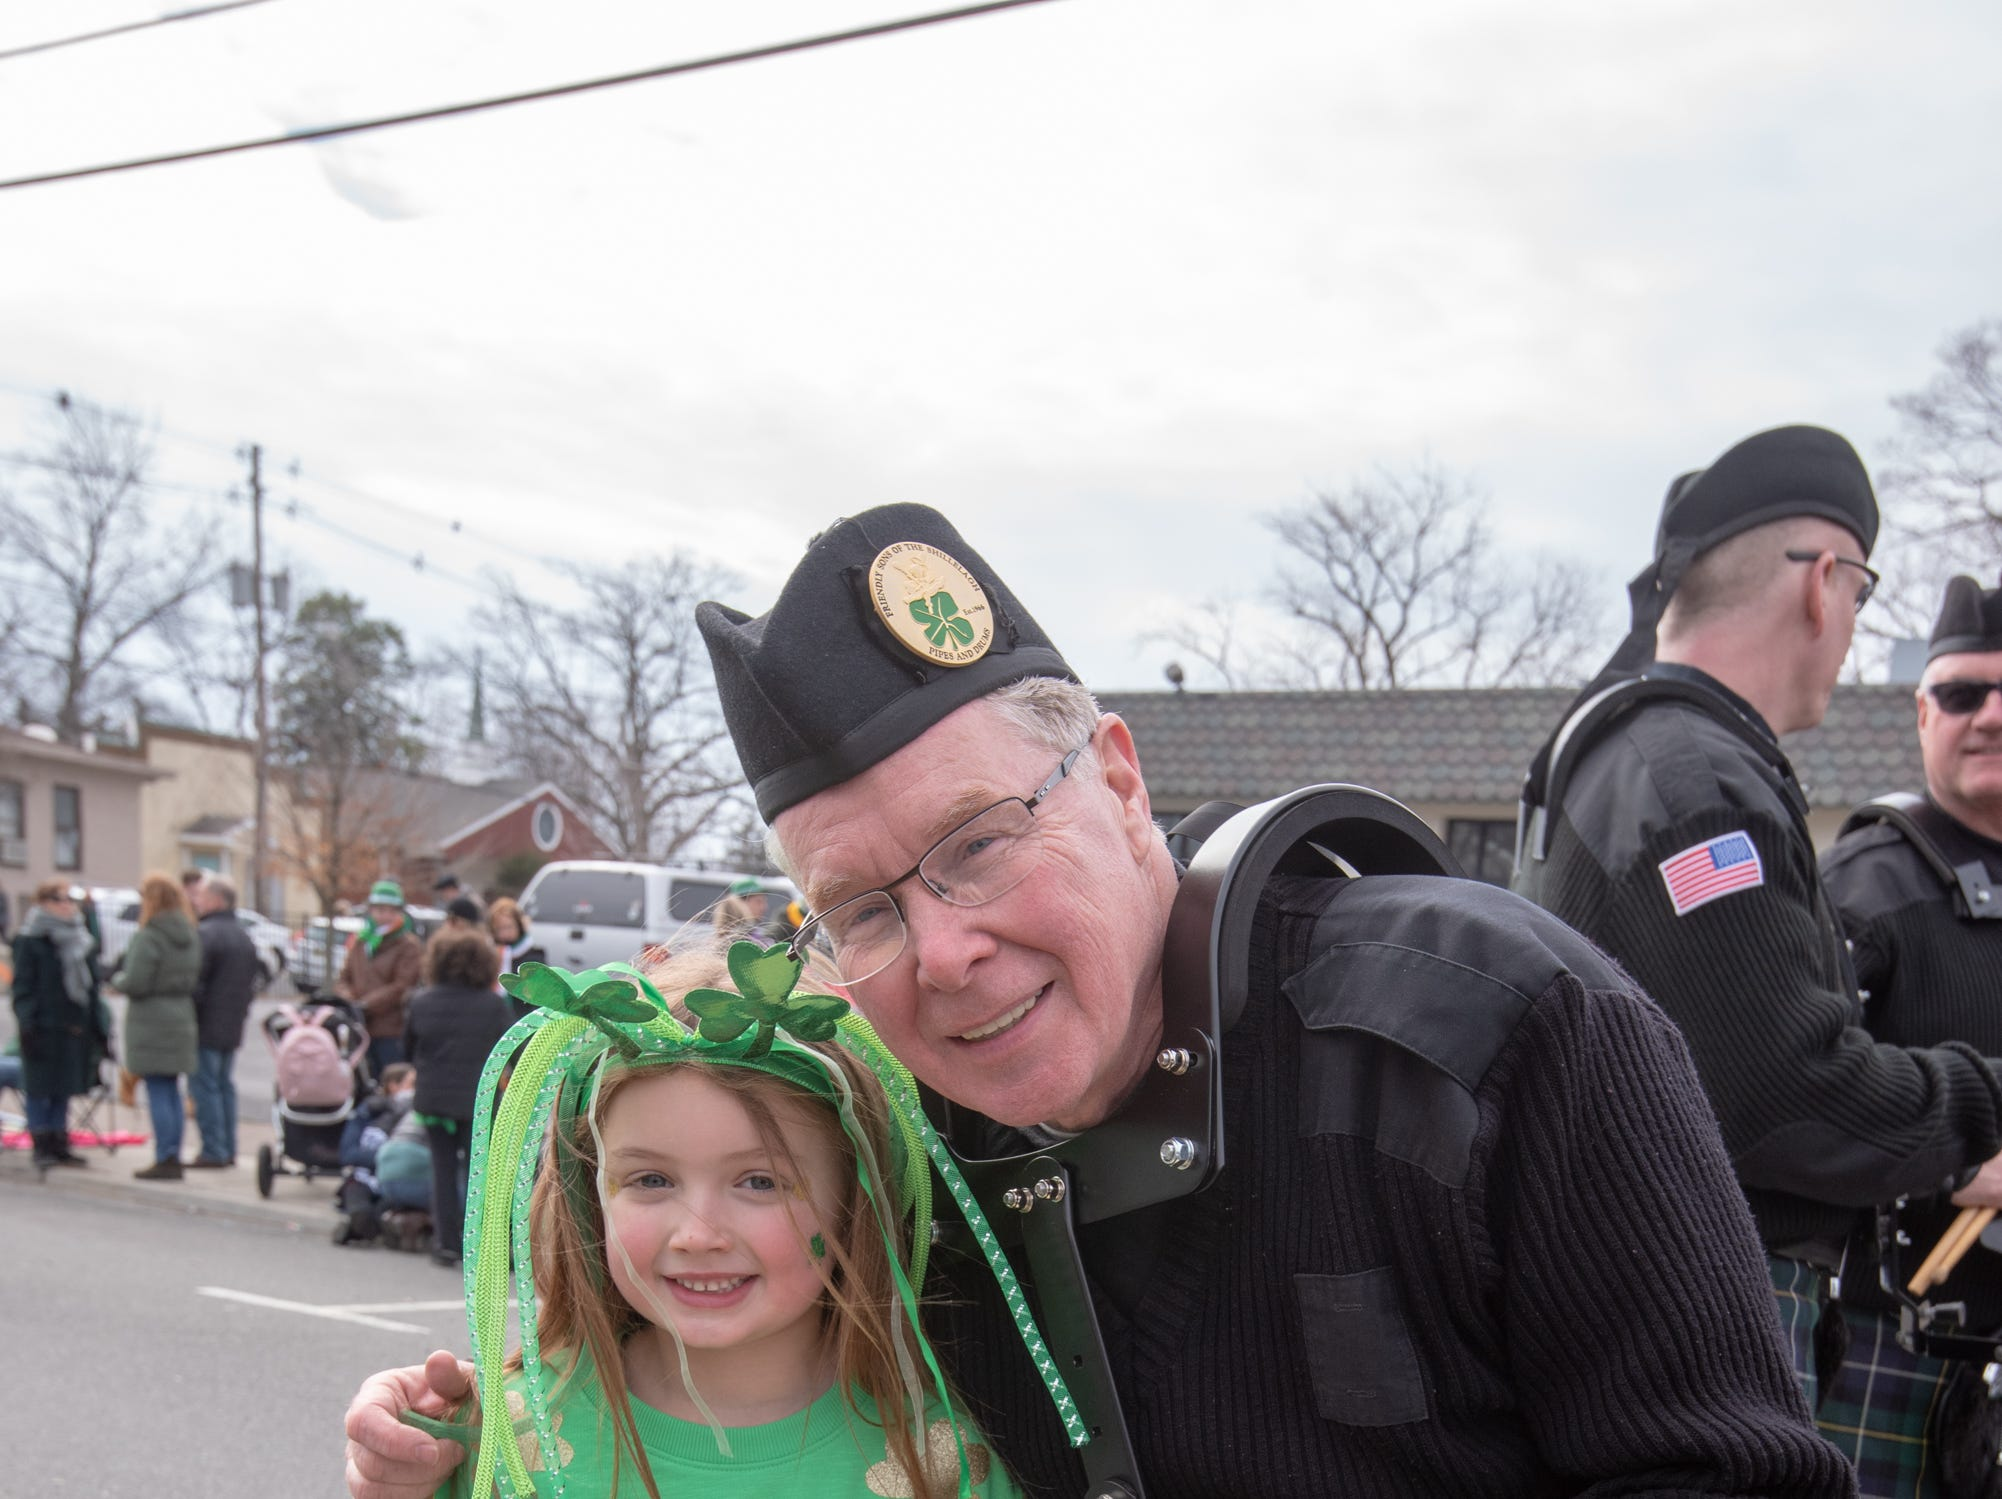 Isla McGarry gets a hug from her grandfather Kevin McGarry who marched in the parade. The 46th annual Belmar/Lake Como St. Patrick's Day Parade was held in Belmar on March 3, 2019.